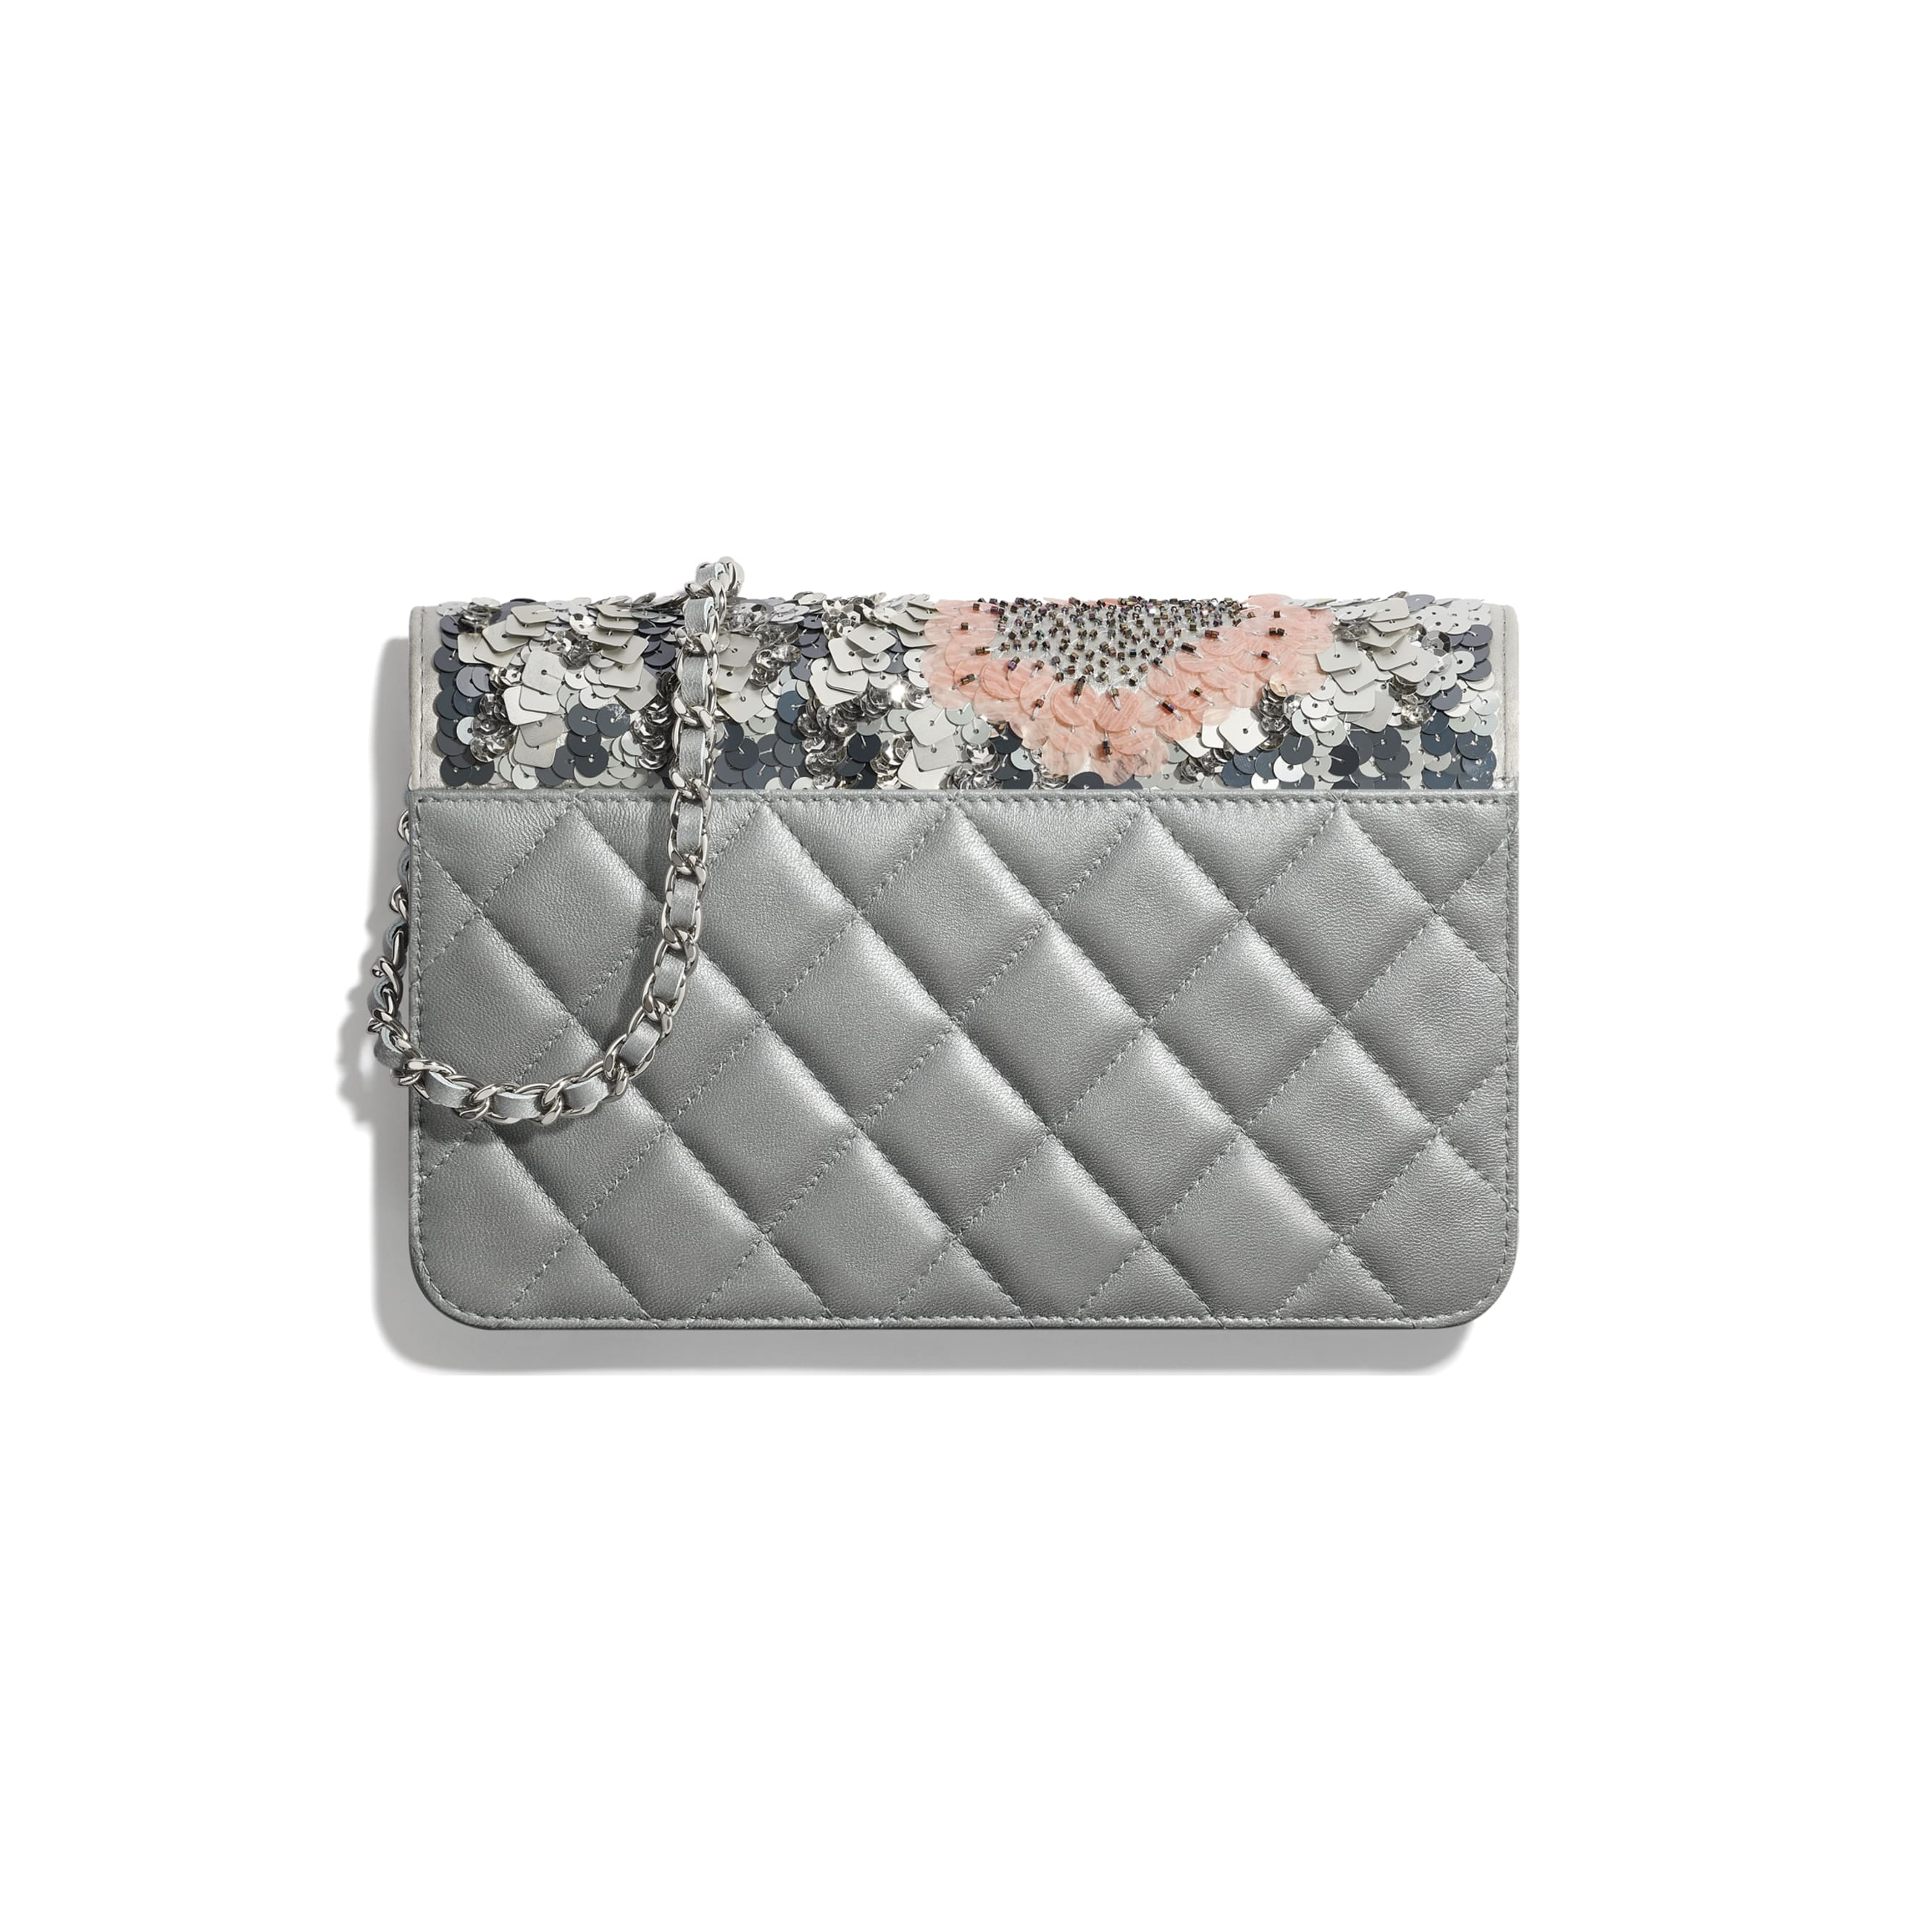 Wallet On Chain - Grey, Silver & Pink - Sequins, Glass Pearls & Silver-Tone Metal - CHANEL - Alternative view - see standard sized version